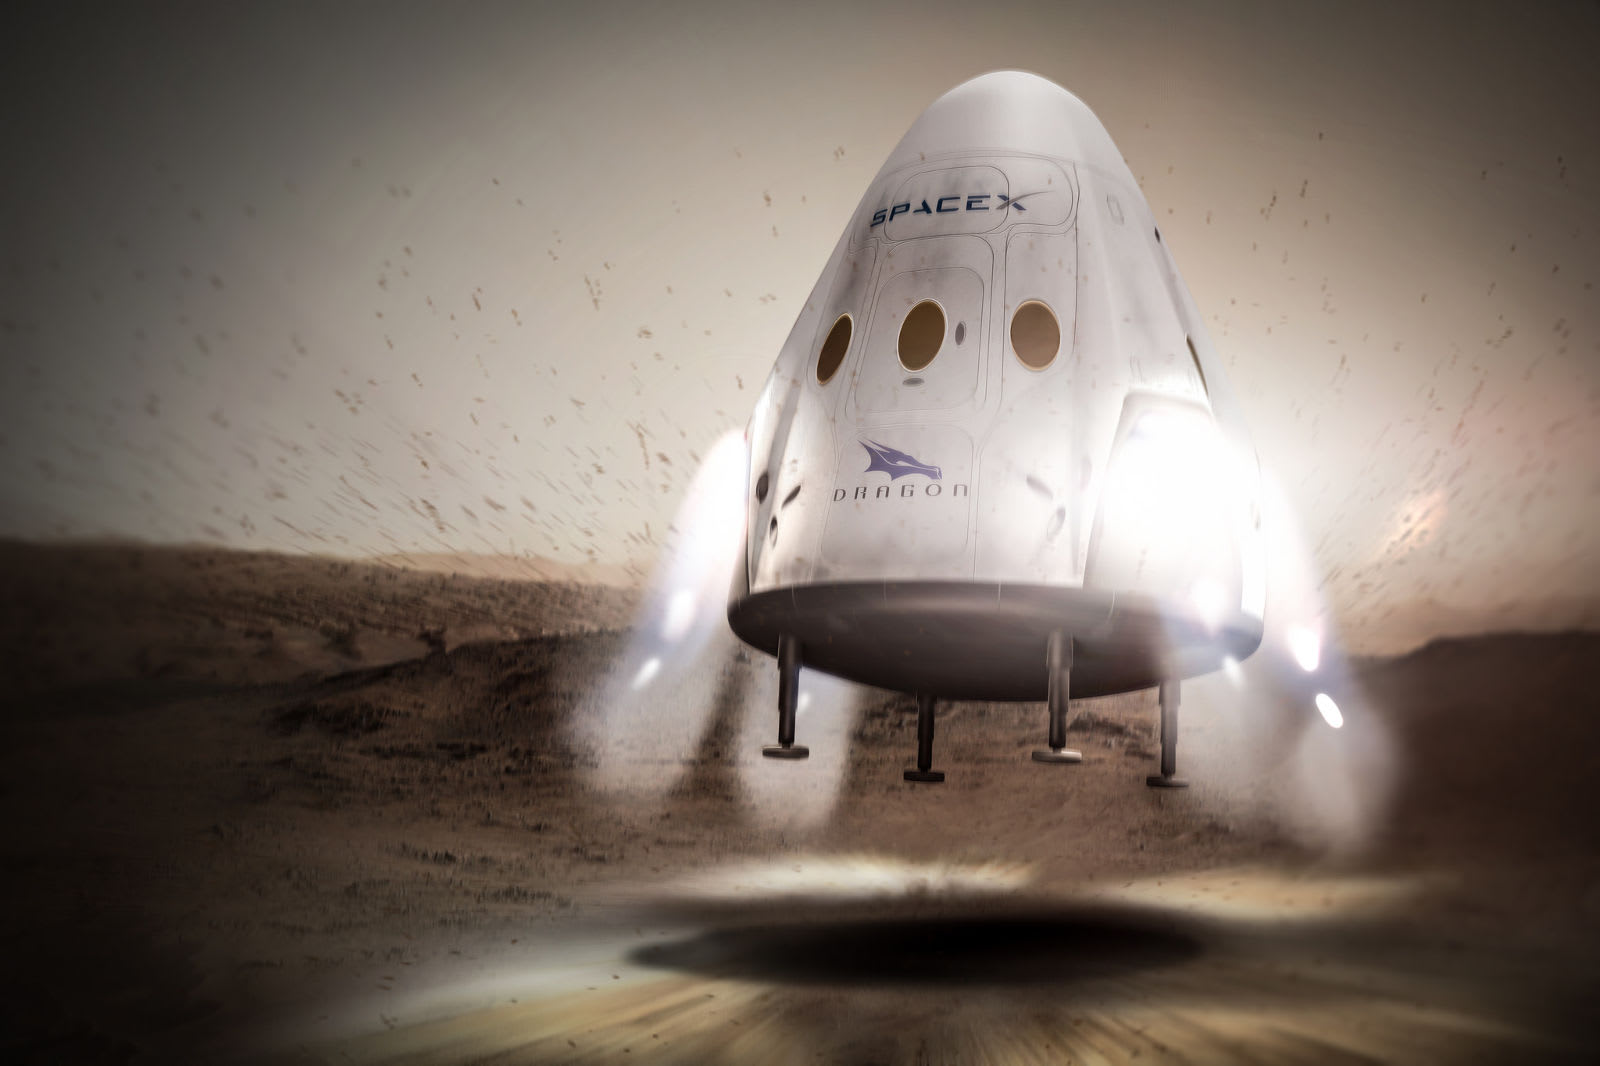 SpaceX reschedules its unmanned Red Dragon mission to Mars